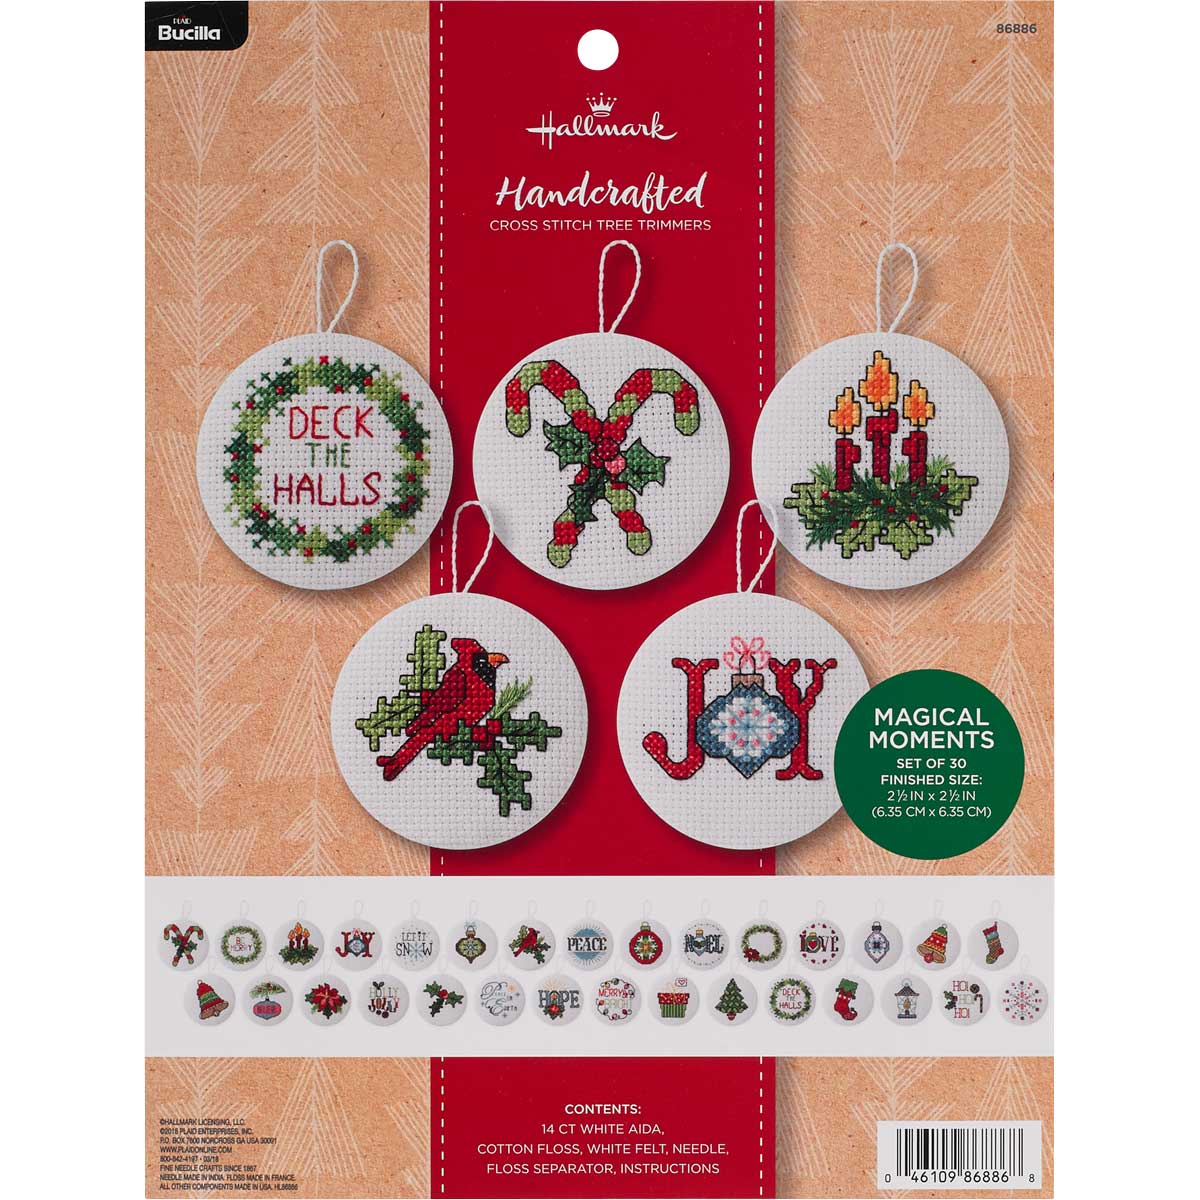 Bucilla Seasonal - Counted Cross Stitch - Tree Trimmer Kits - Hallmark - Magical Moments